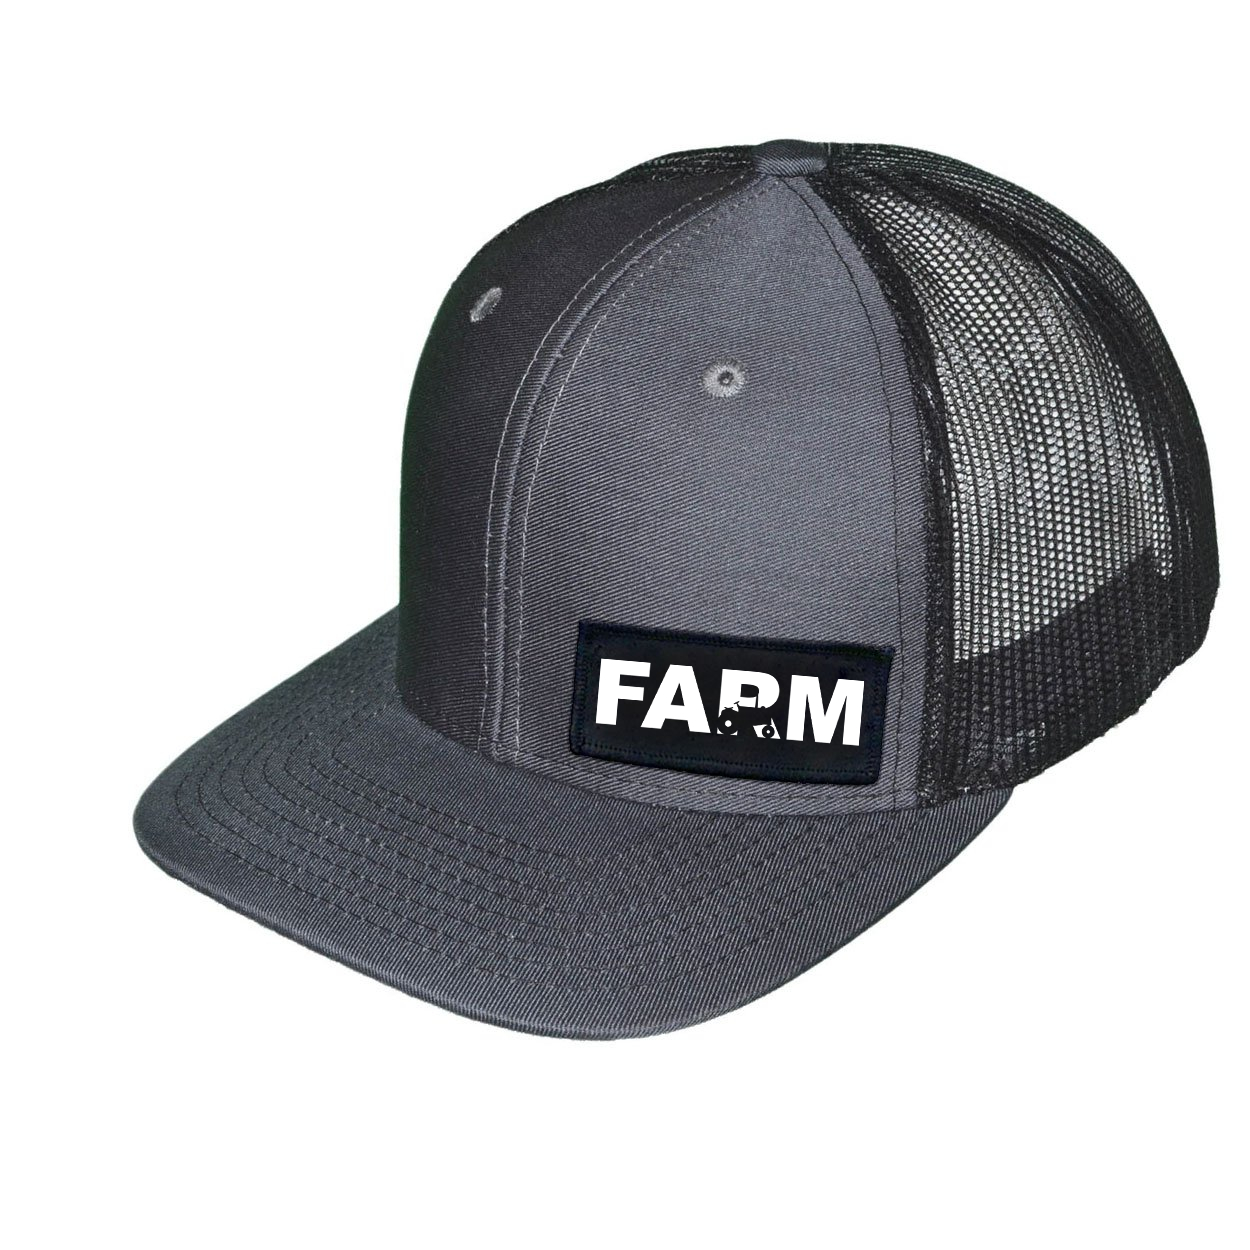 Farm Tractor Logo Night Out Woven Patch Snapback Trucker Hat Dark Gray/Black (White Logo)